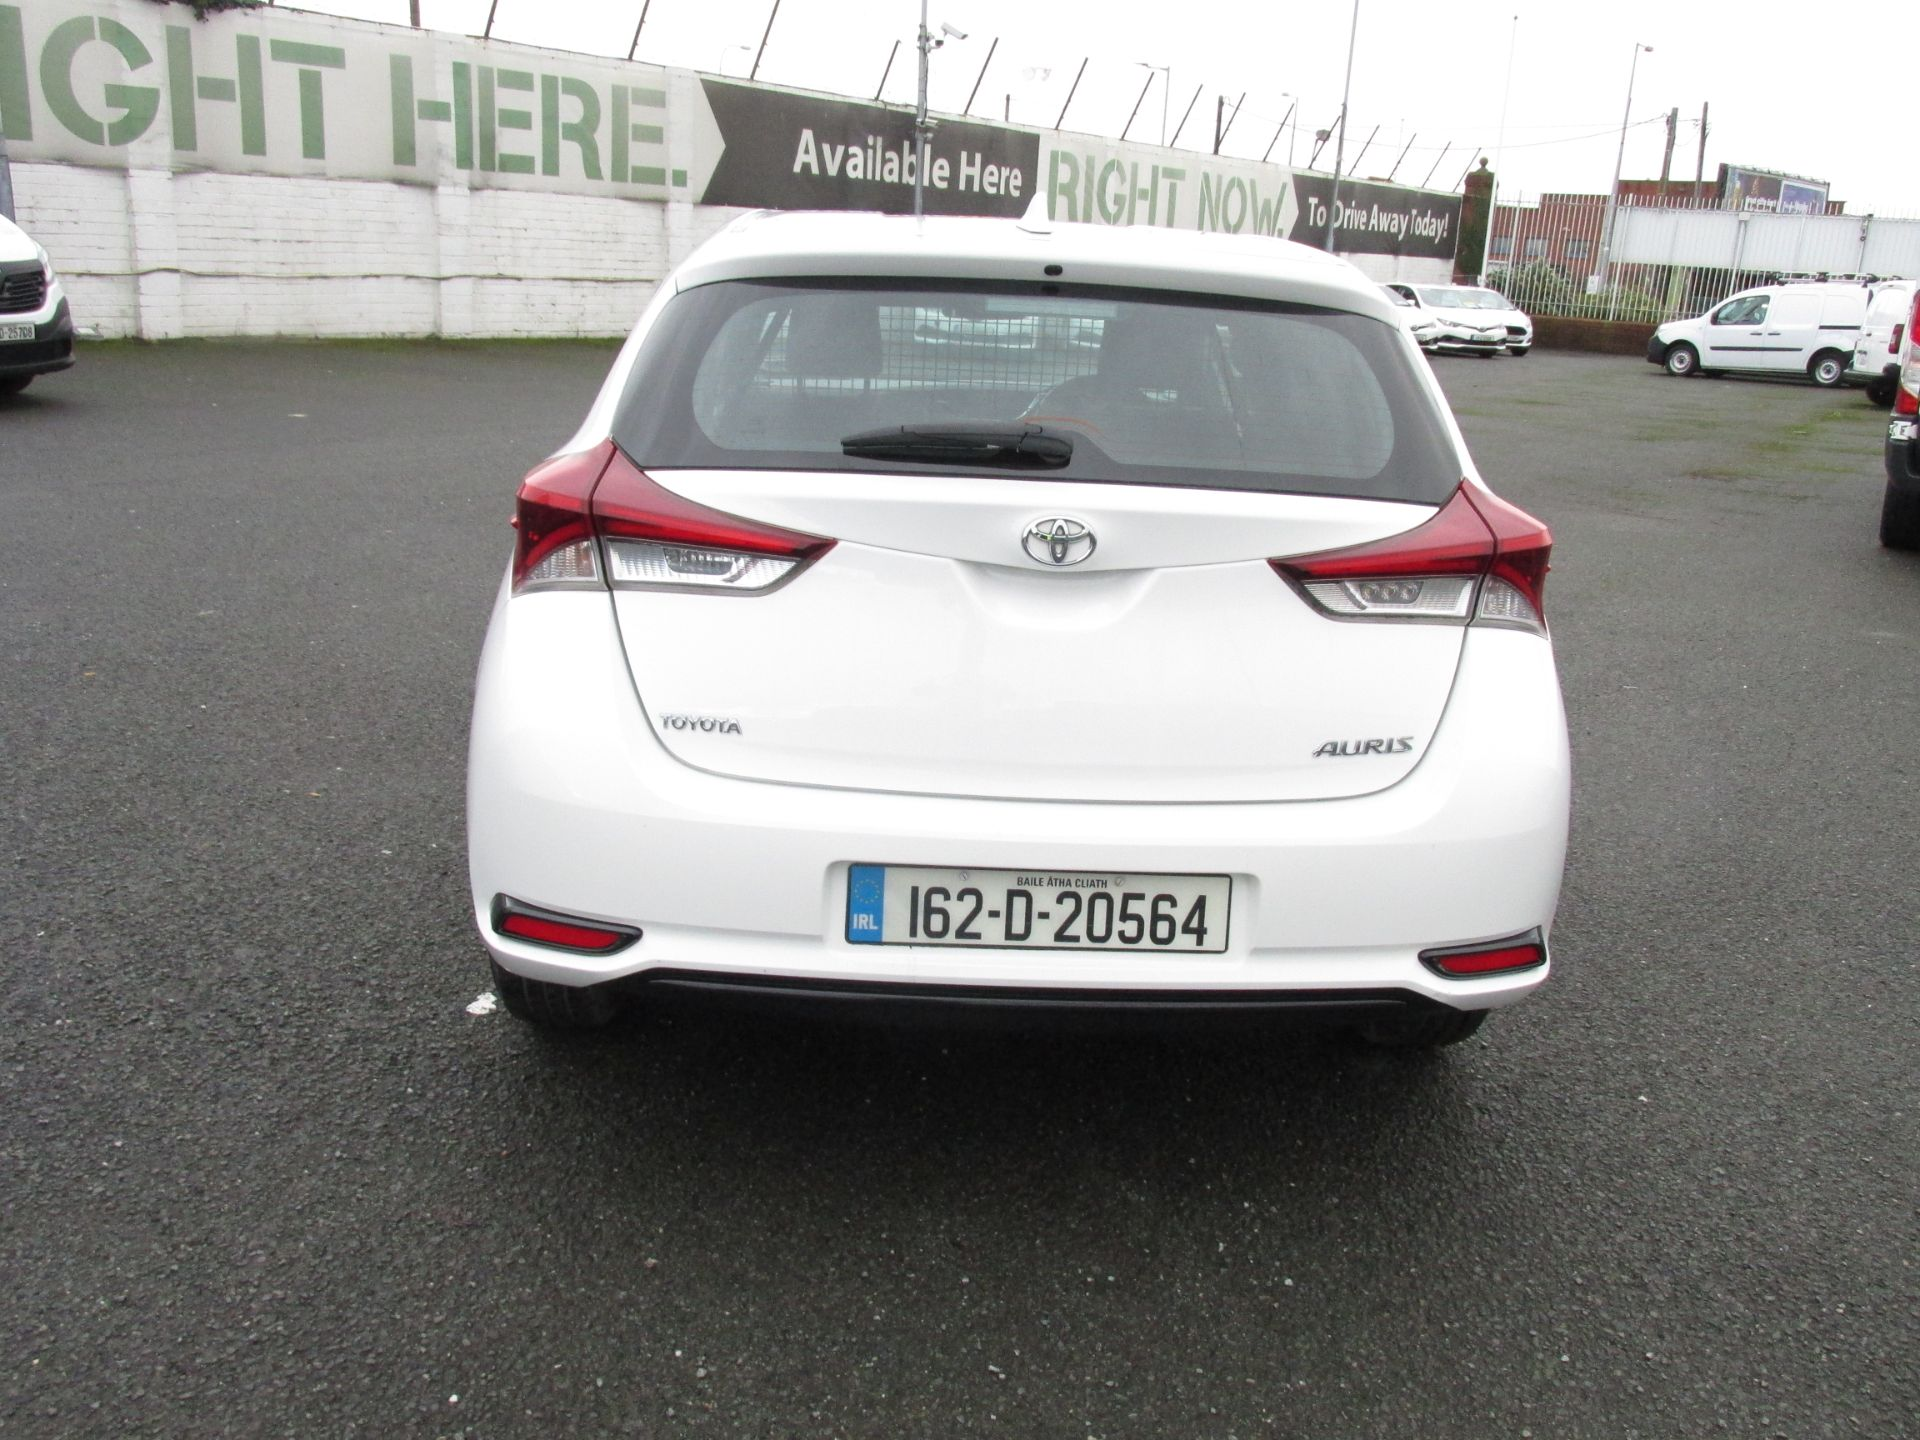 2016 Toyota Auris 1.4d-4d Terra 4DR click and deliver call sales for more info (162D20564) Image 6